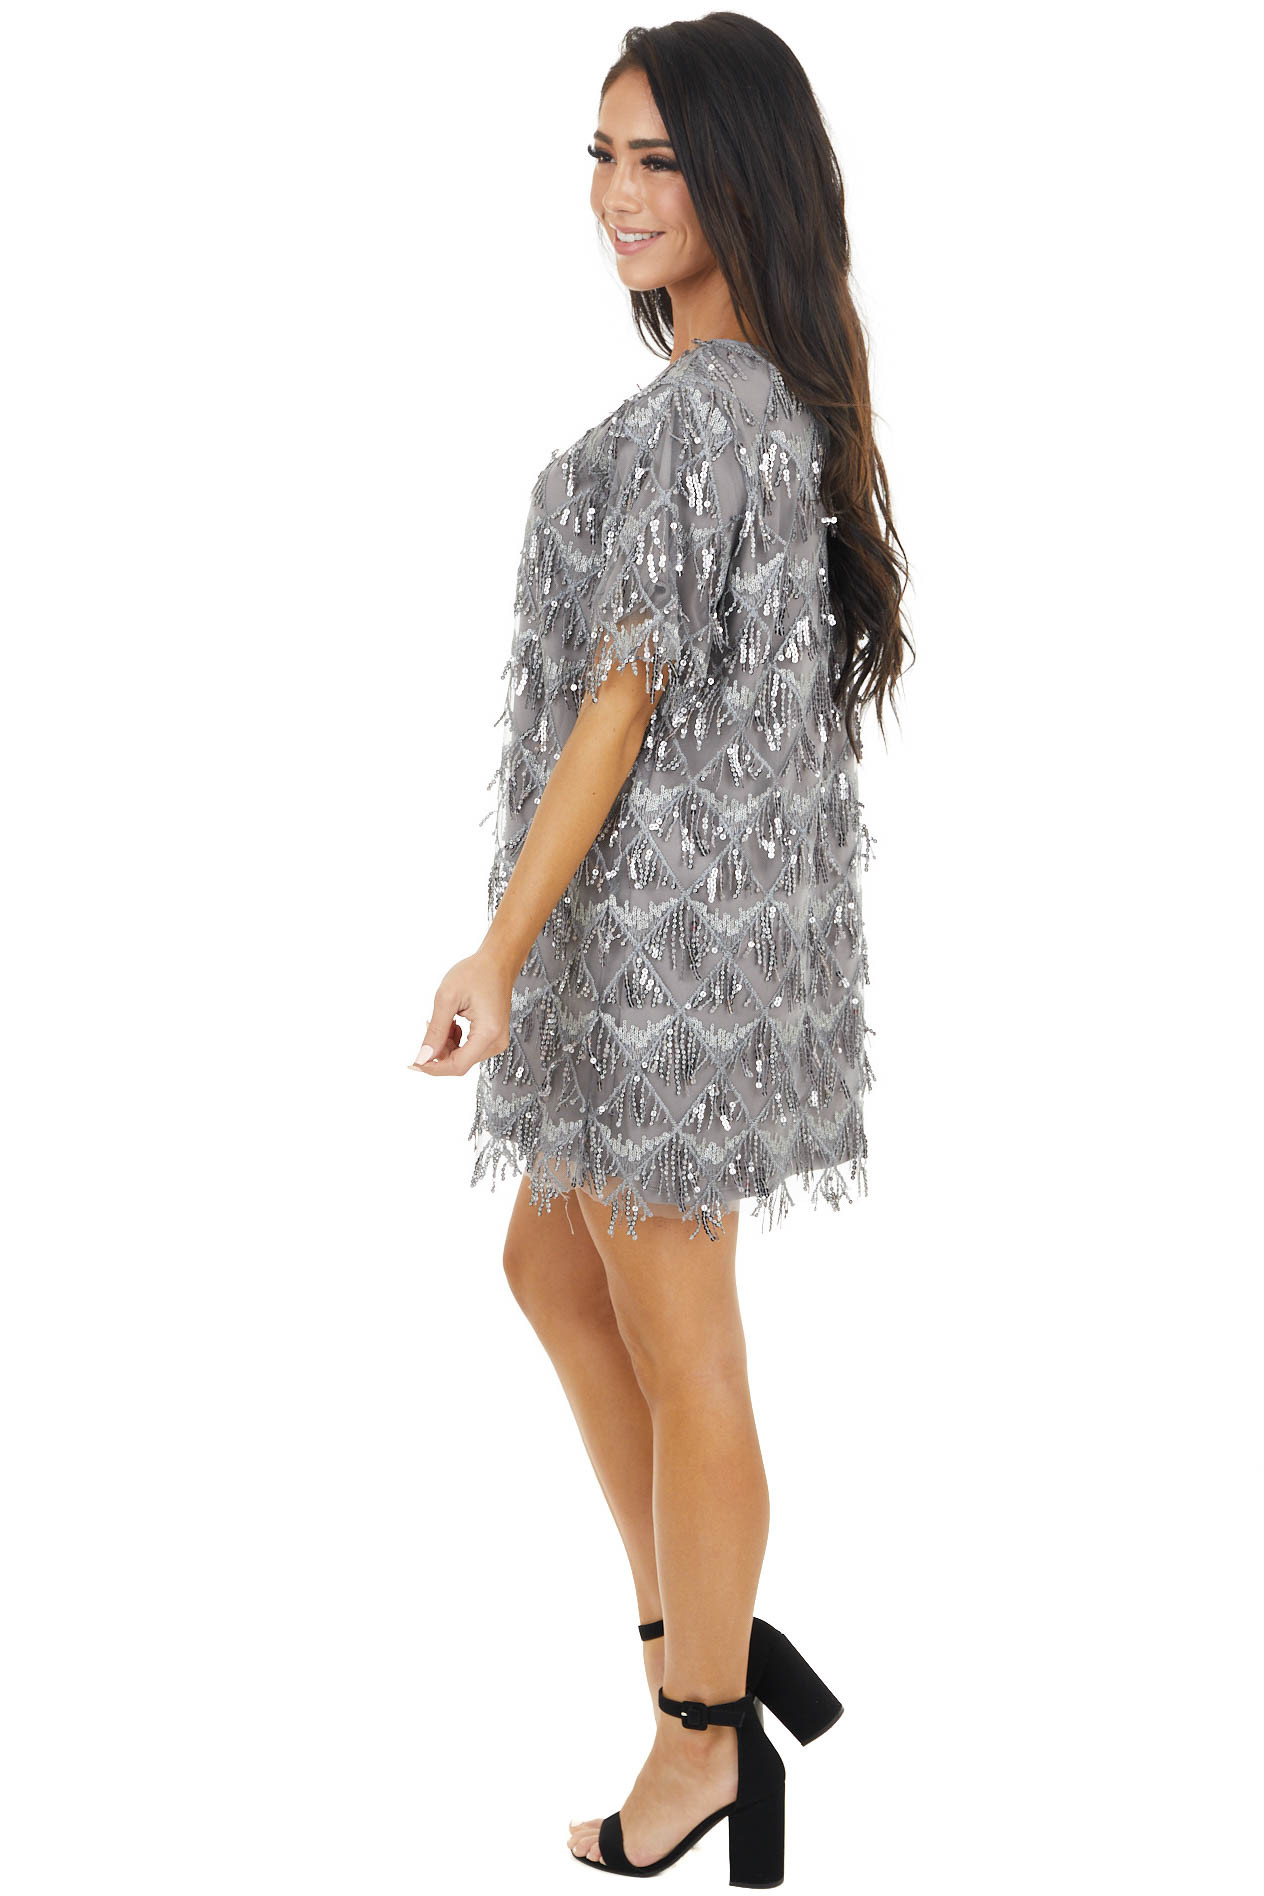 Stone Grey Sequin Short Sleeve Mini Dress with Keyhole Back